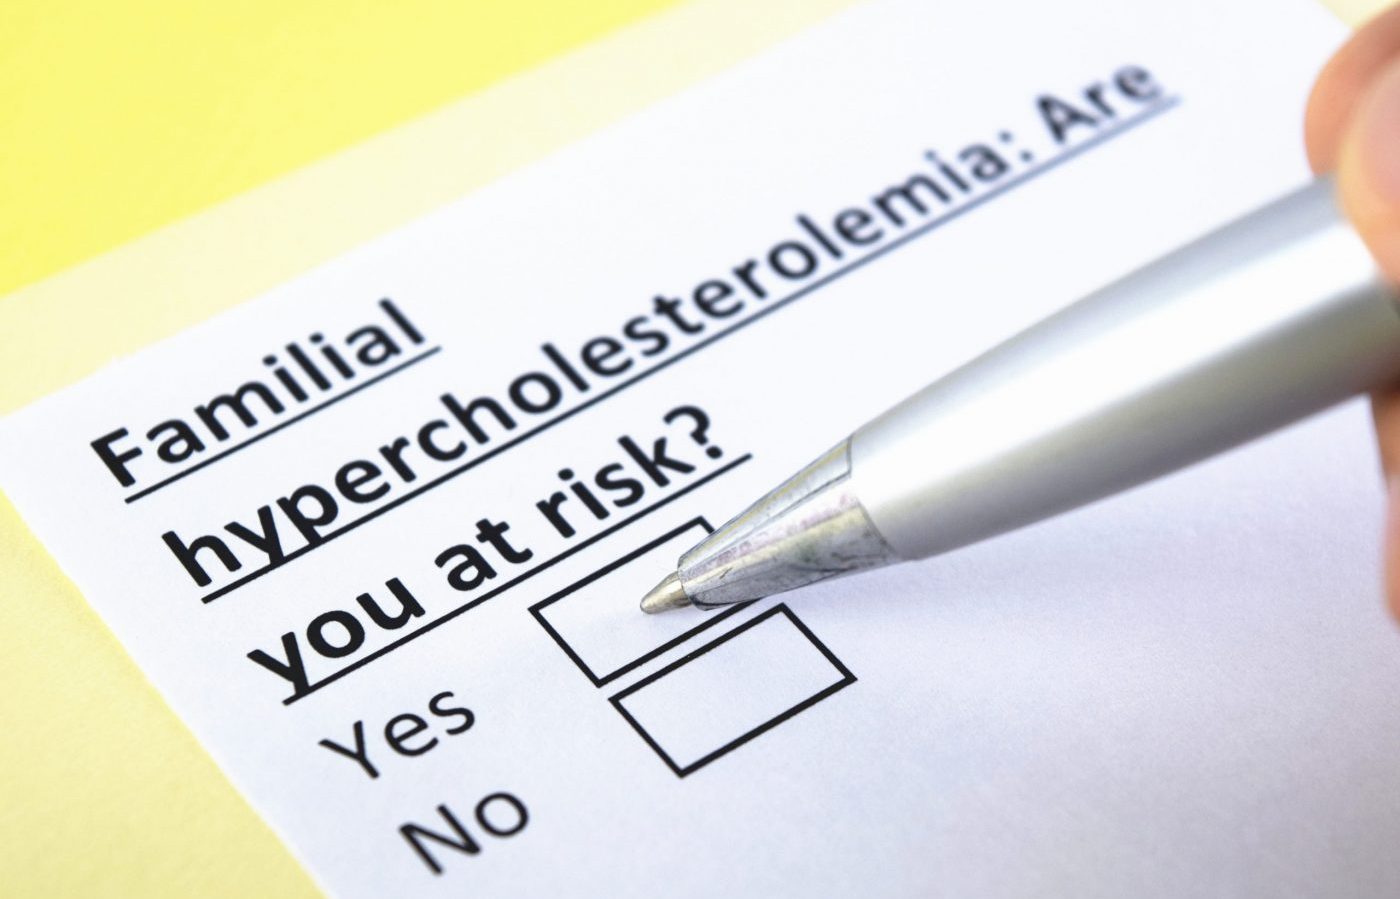 Familial Hypercholesterolemia: Are you at risk? Yes or no